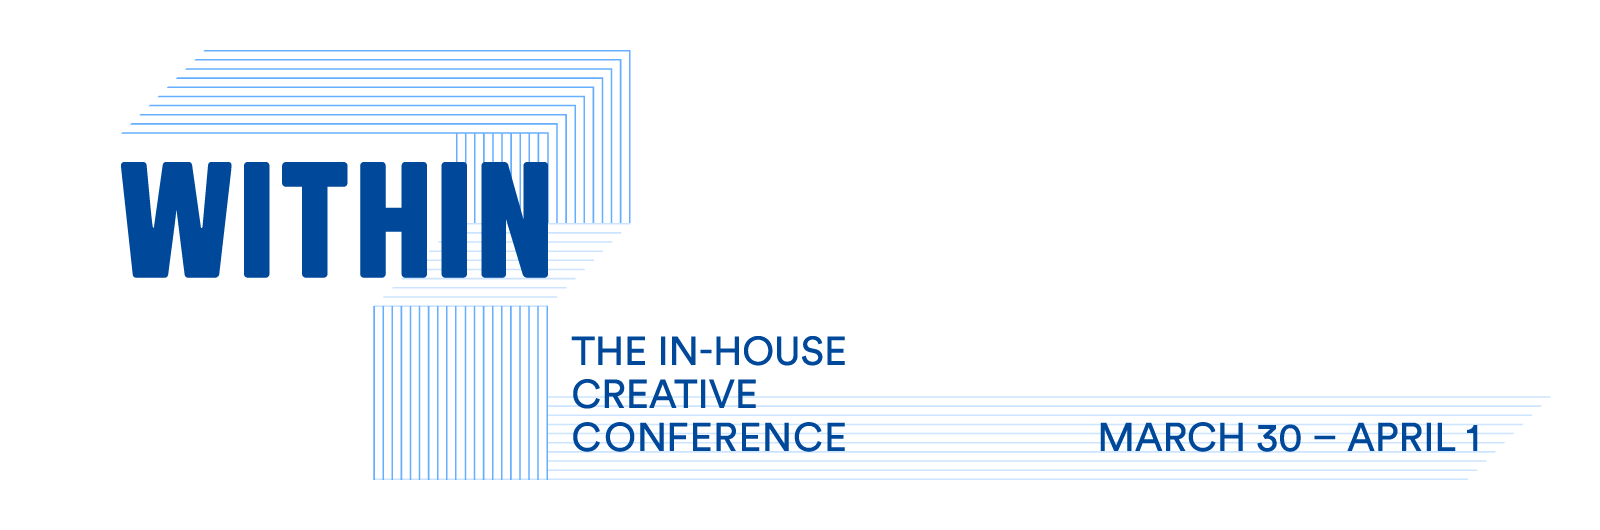 WITHIN: The In-House Creative Conference